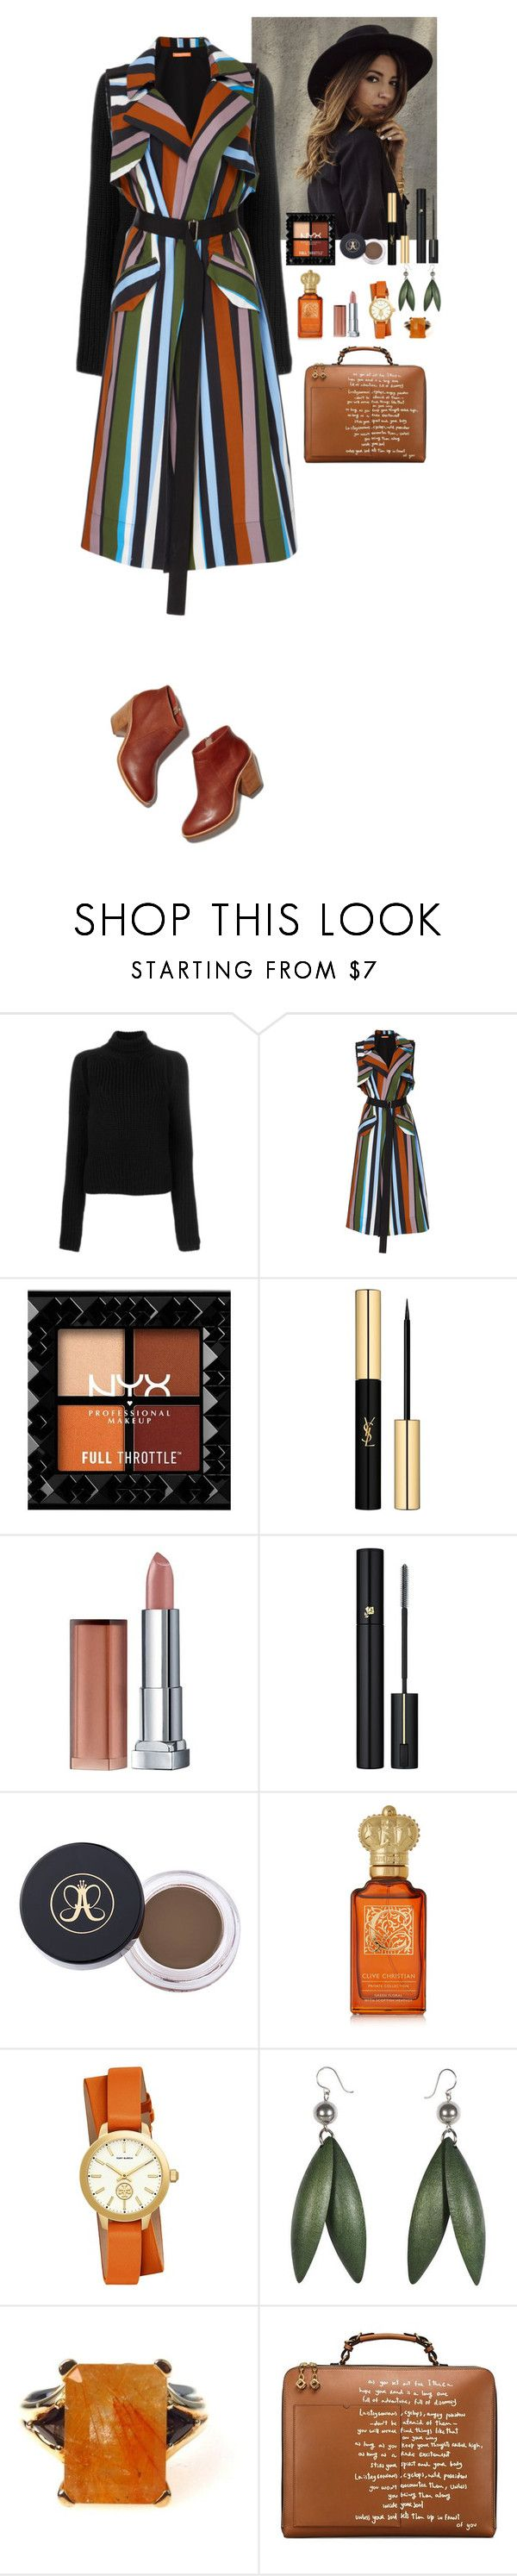 """""""Streetstyle"""" by eliza-redkina on Polyvore featuring мода, Calvin Klein 205W39NYC, Smarteez, Yves Saint Laurent, Maybelline, Lancôme, Clive Christian, Tory Burch, StreetStyle и outfit"""